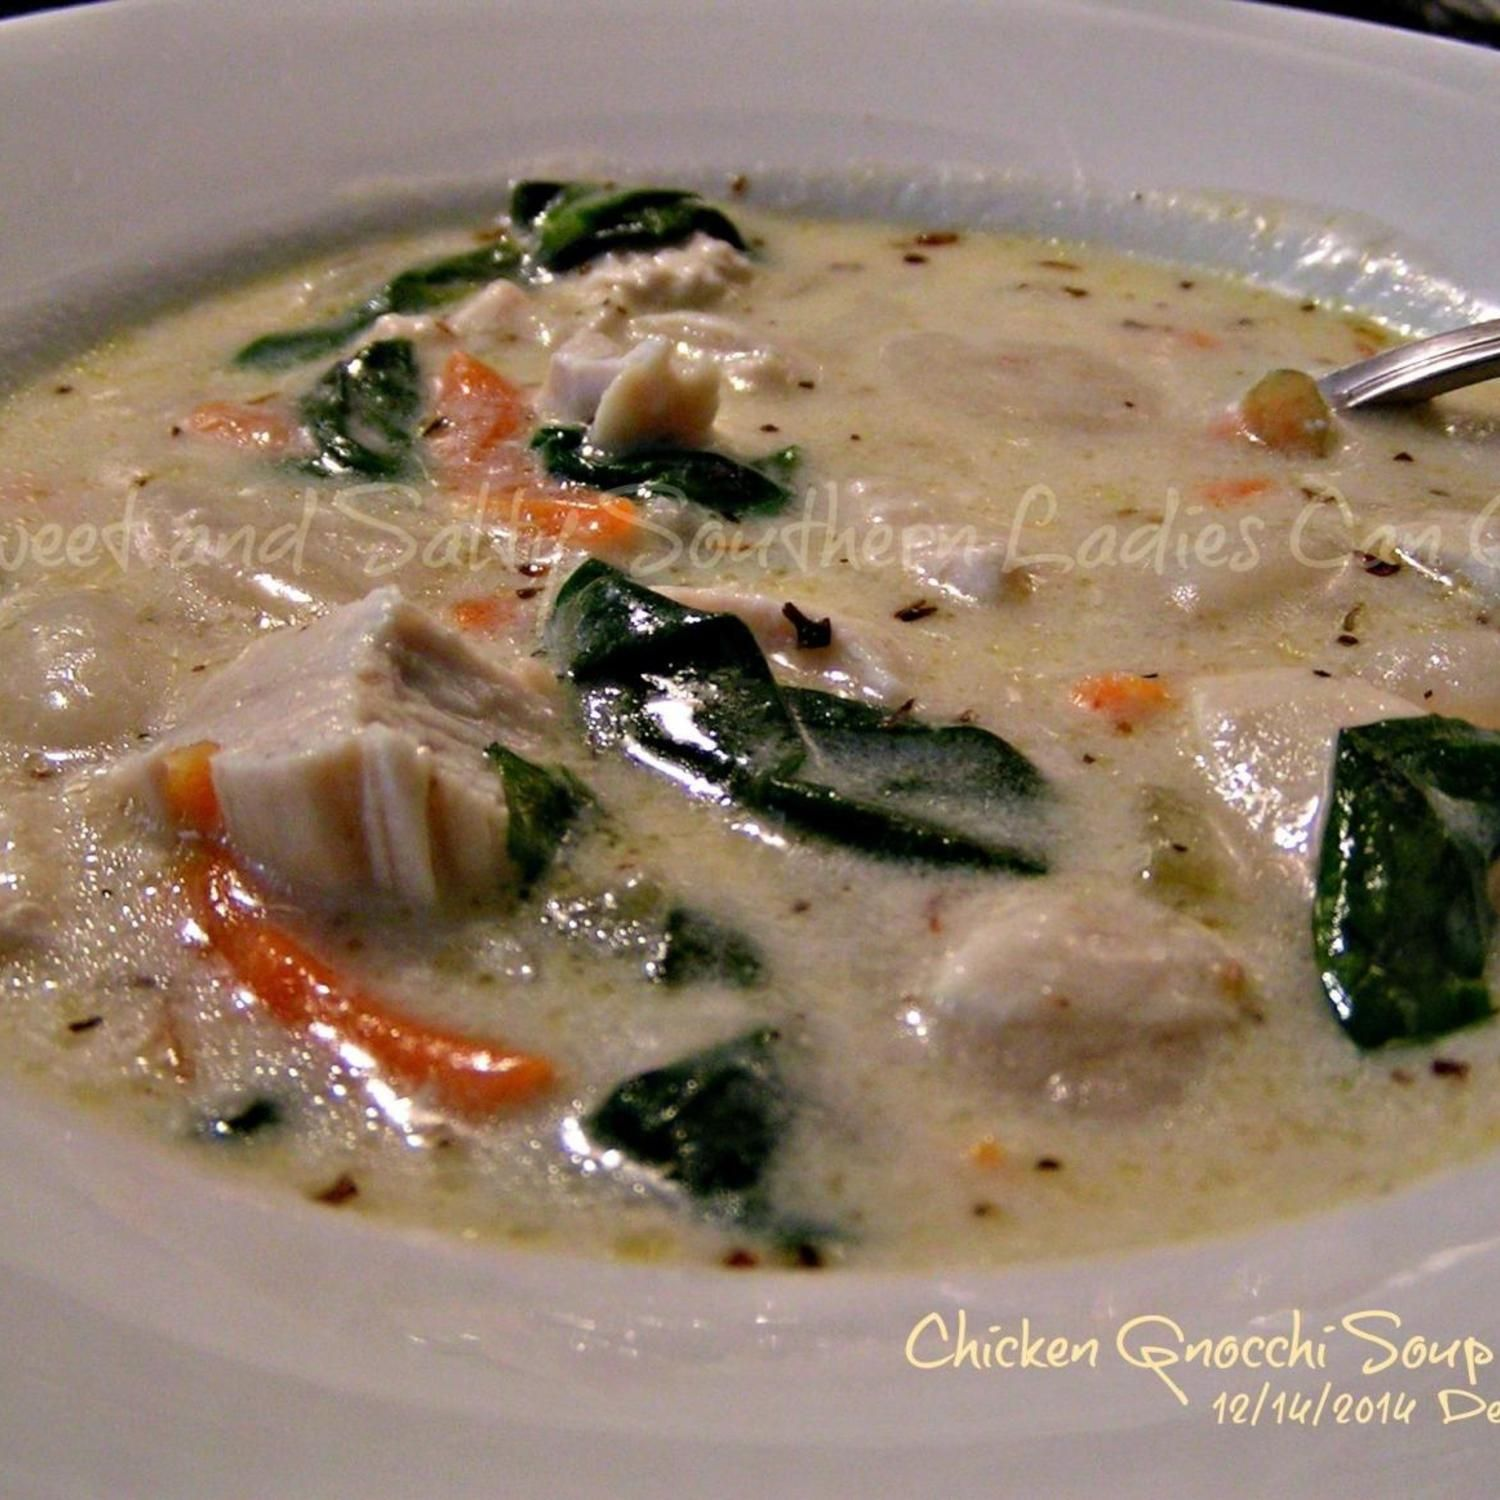 Fancy Chicken And Gnocchi Soup Olive Garden Photos - Brown Nature ...